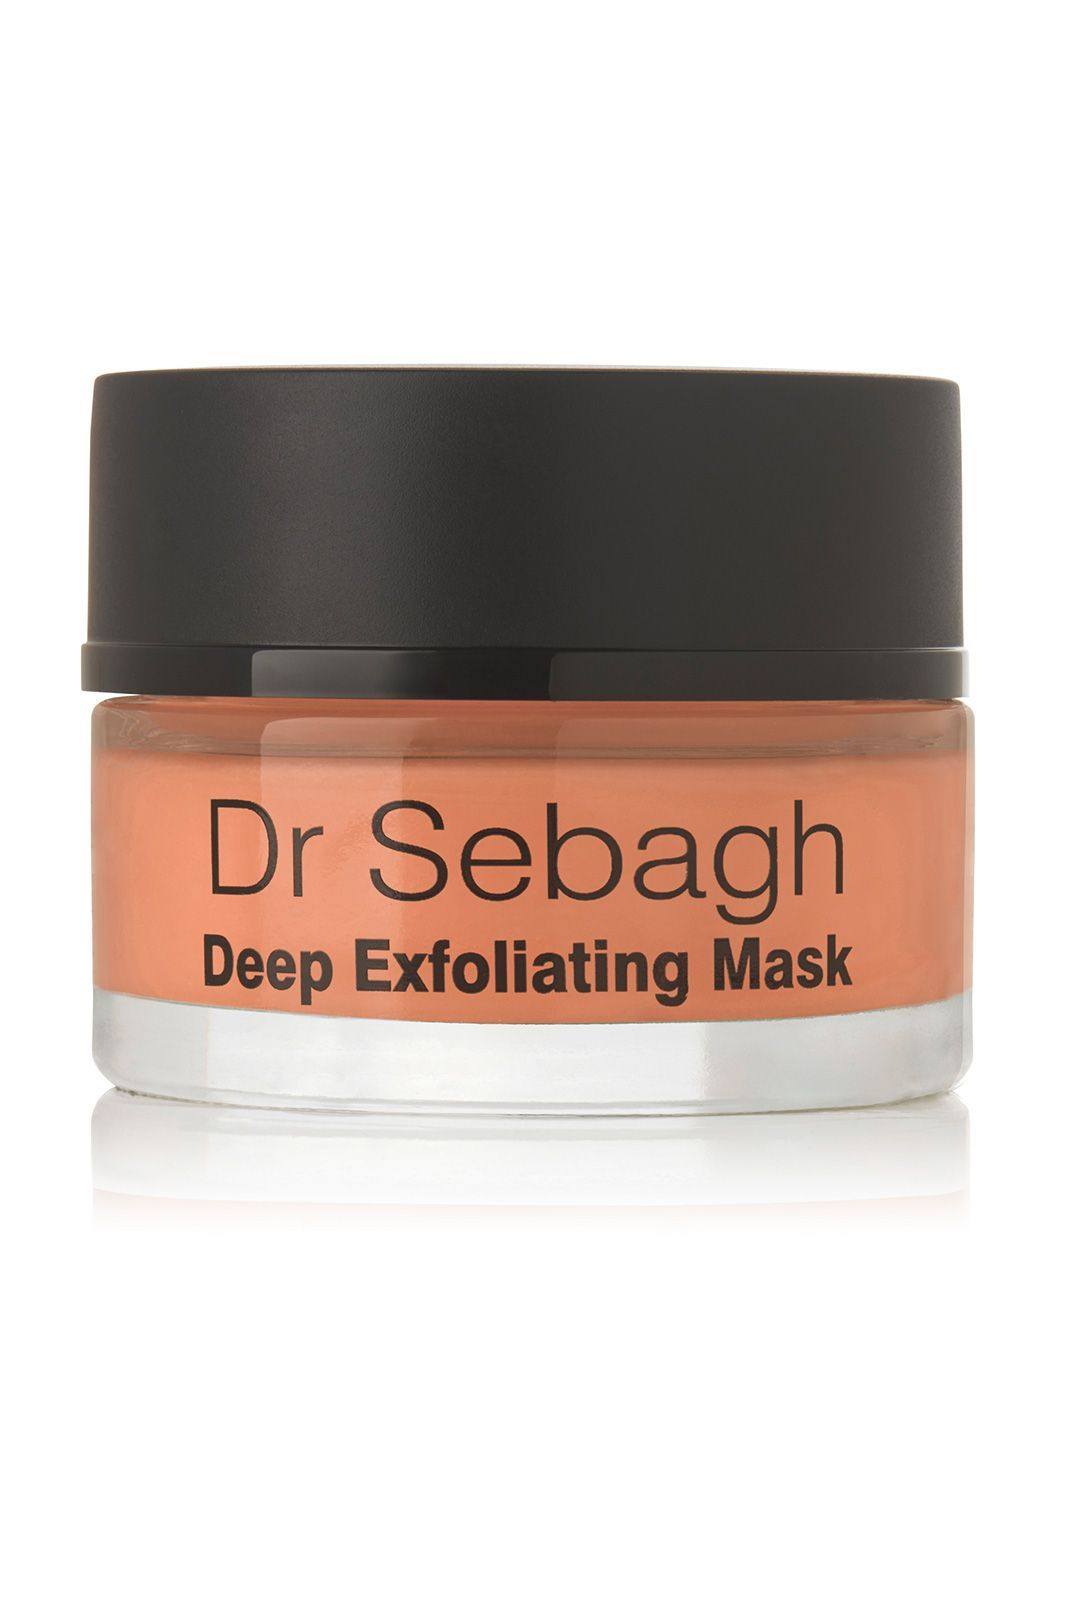 The Skin-Soothing Masks You Need For The Post-Holiday Slump #refinery29  http://www.refinery29.com/soothing-face-masks#slide-1  First things first: Exfoliate away any dry, party-worn dead cells on the skin's surface. Not only will your skin look much brighter, but any serums or products applied afterward will penetrate the skin more readily. As always, Dr. Sebagh knows what's up. This bright-orange mask contains the alpha-hydroxy acids (AHAs) azelaic and lactic, which dissolve surface…